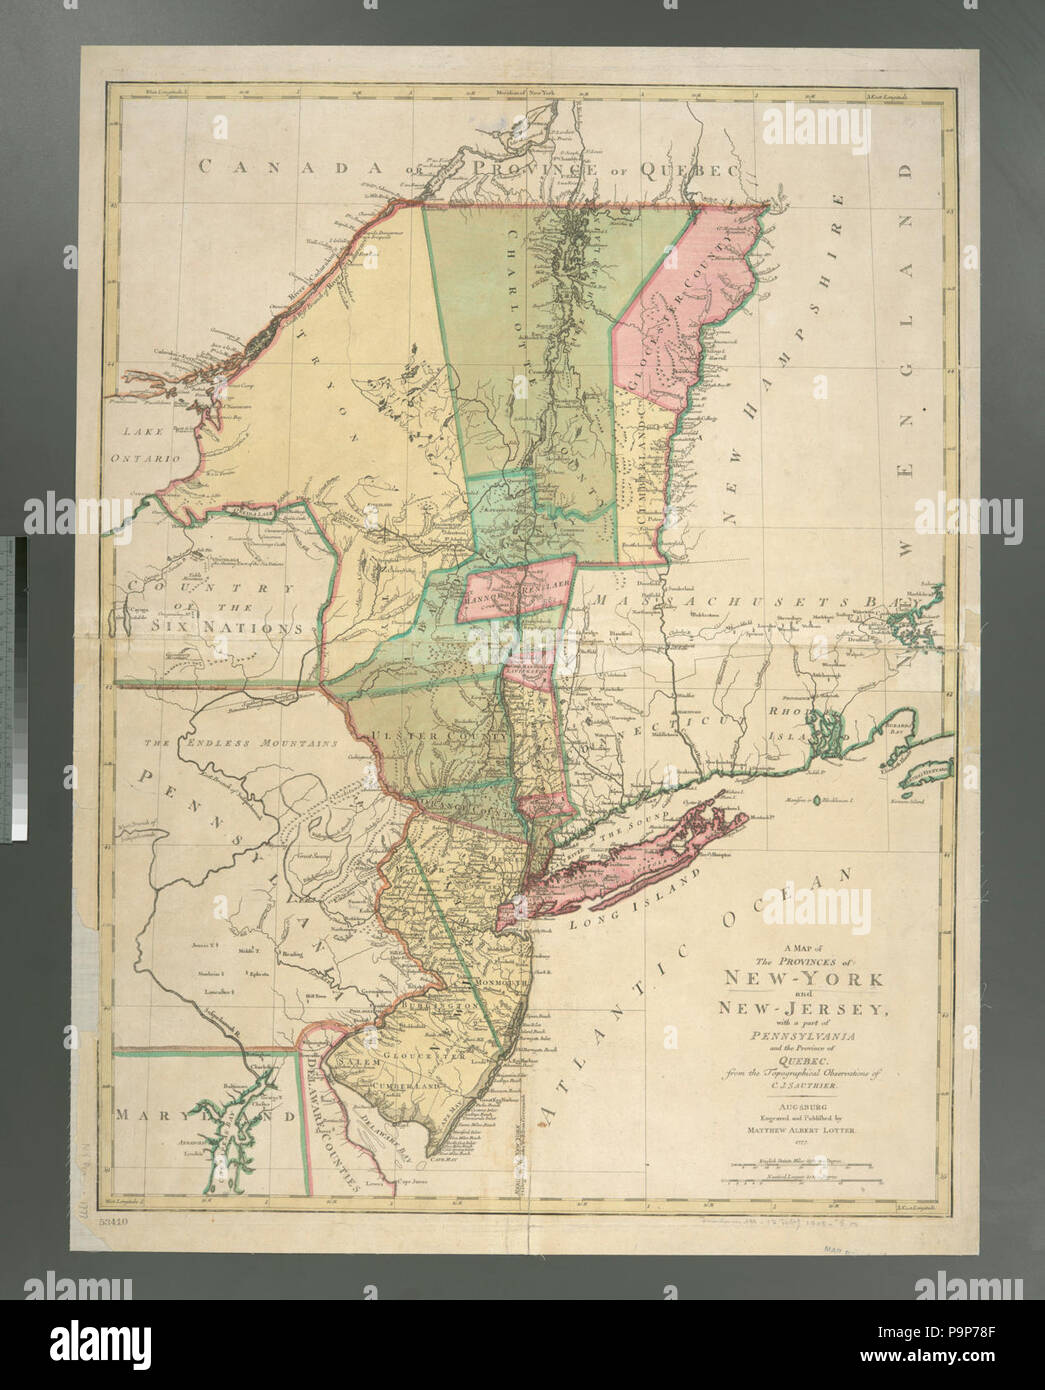 Map Of New York And Quebec.A Map Of The Provinces Of New York And New Jersey With A Part Of